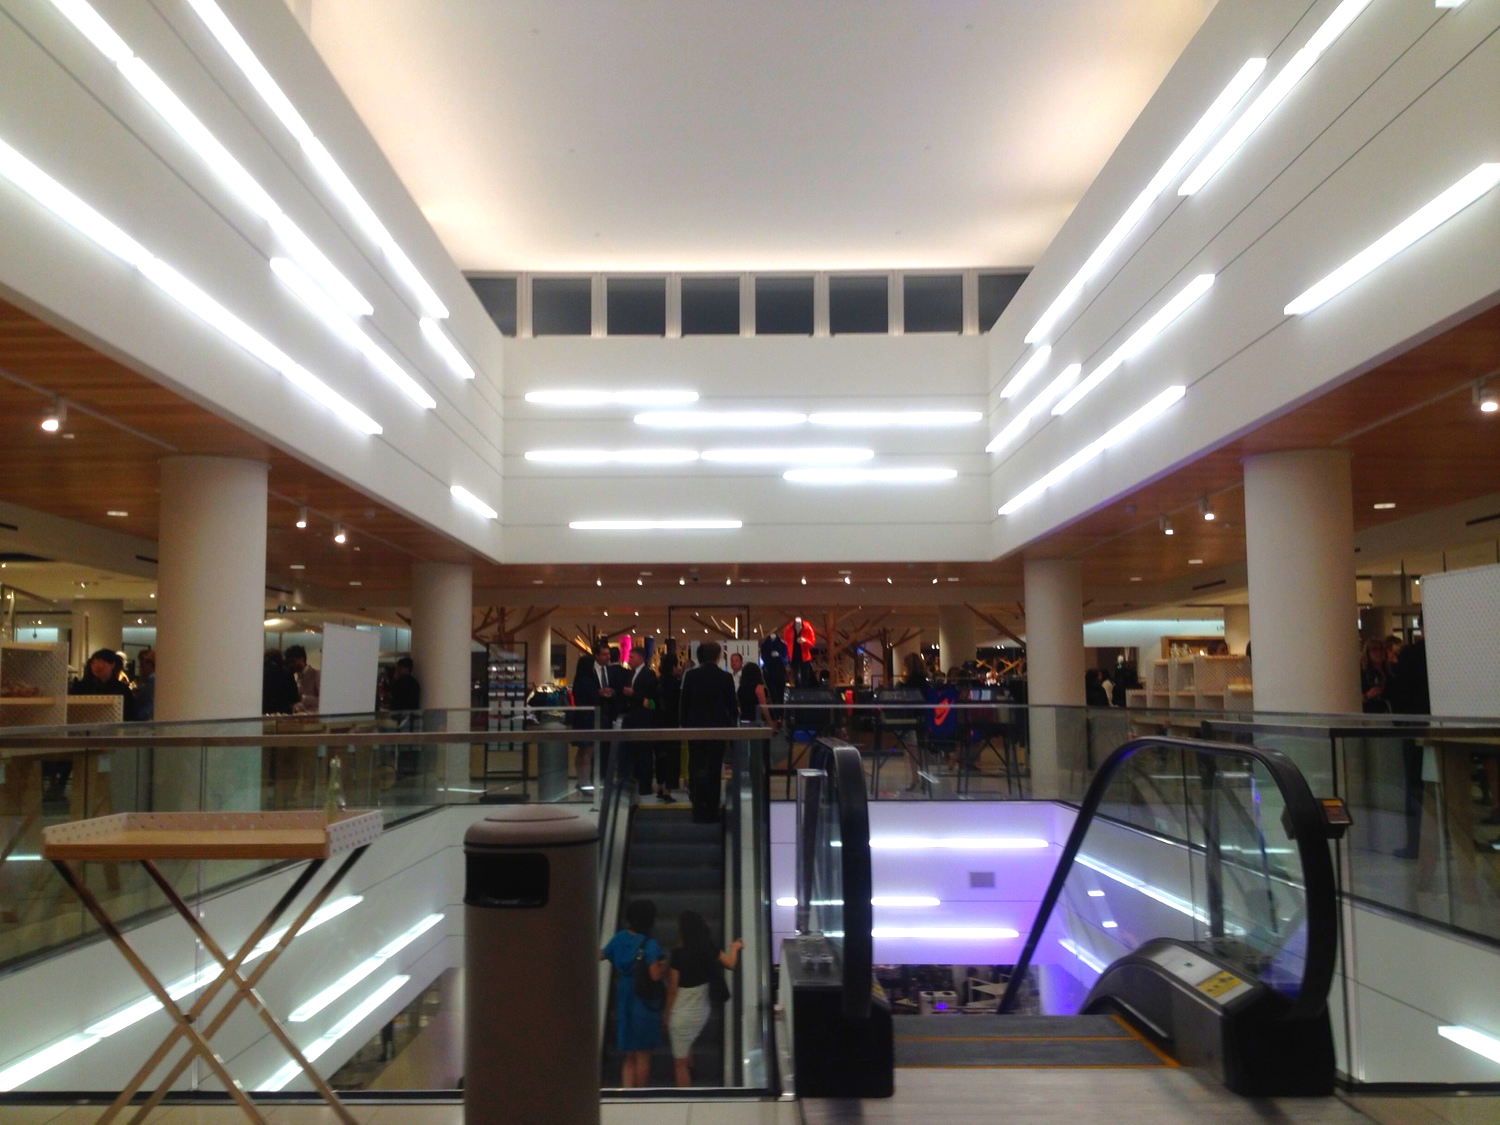 The store's escalator well featured modern lighting and, in the daytime, natural light (this photo was taken at 9:30pm)